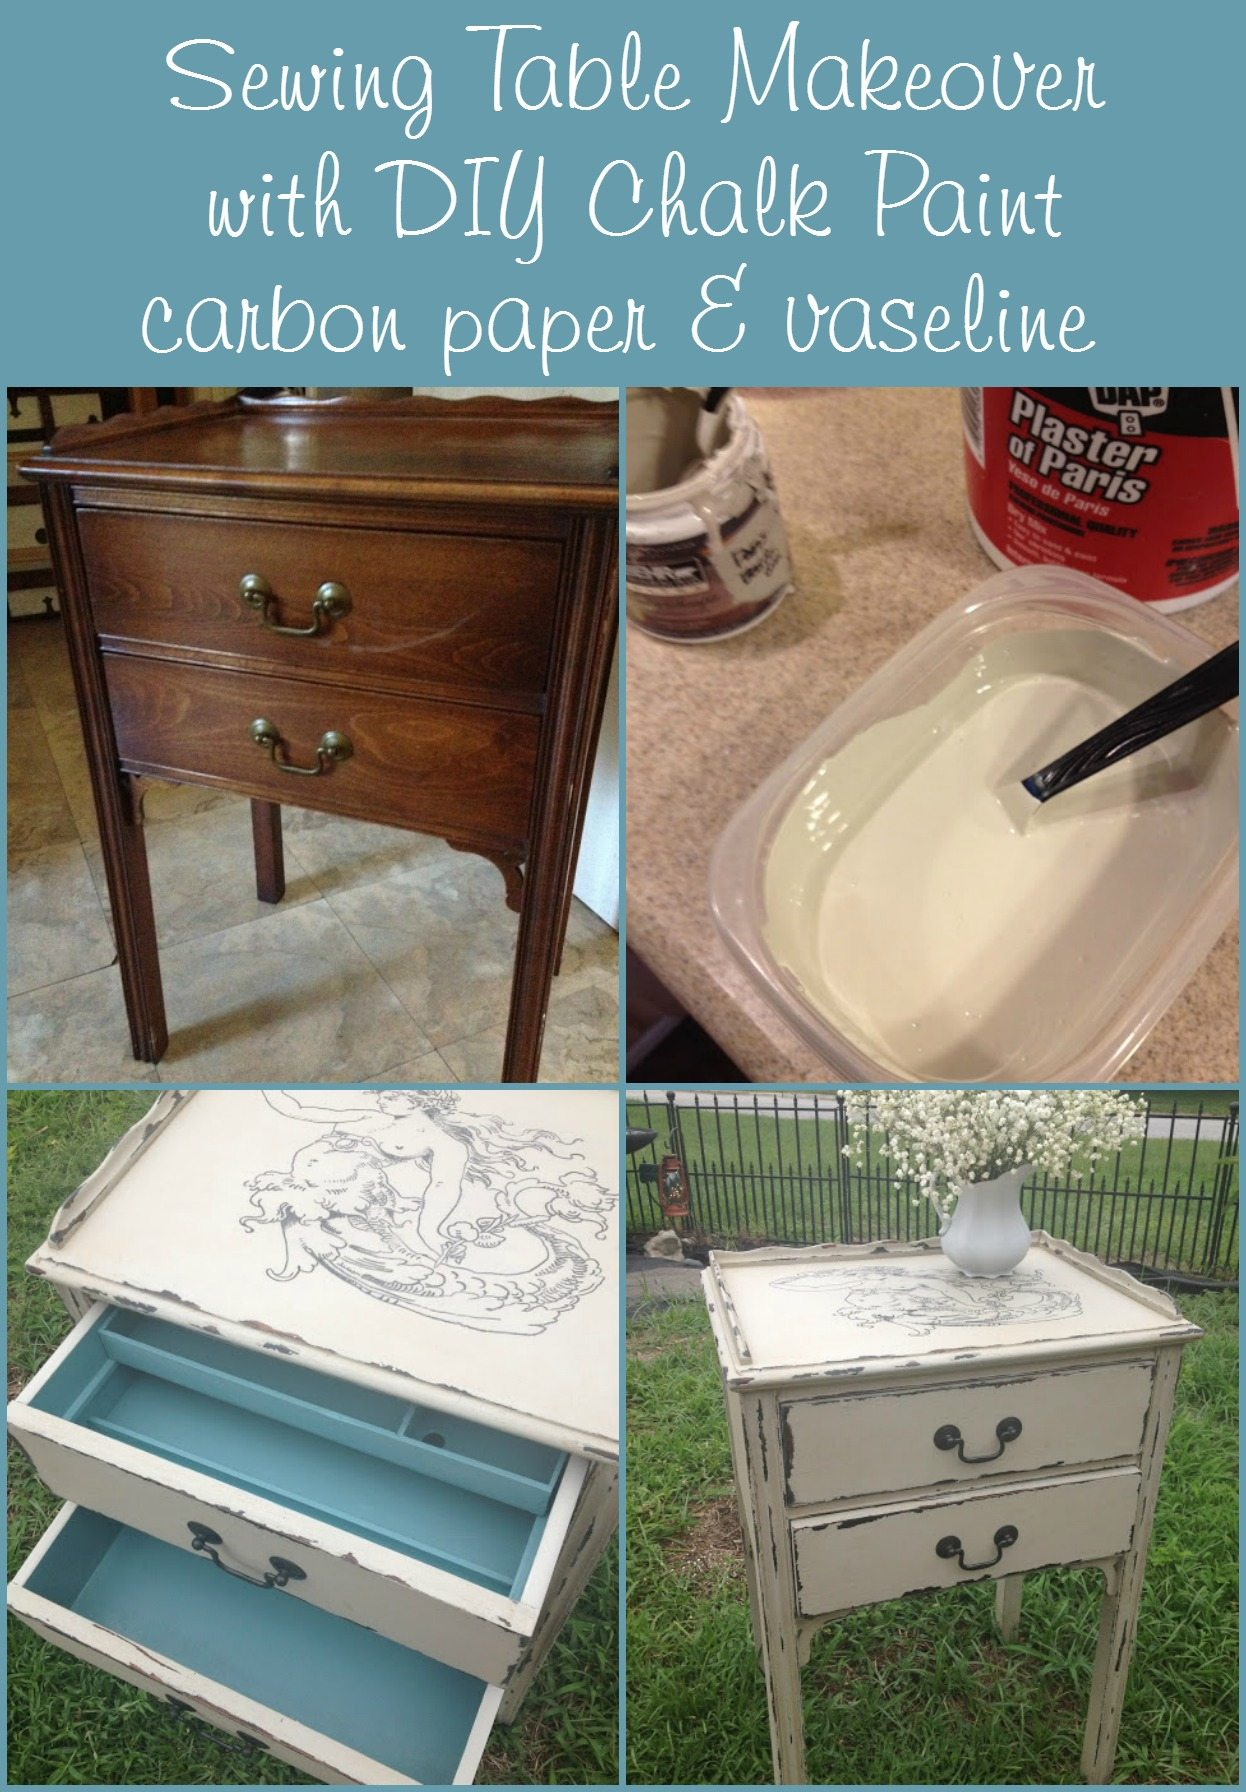 Sewing table makeover using paint, a carbon traced Graphics Fairy image, painted with a paint pen. Old sewing table into a great new piece! Love the blue drawers. #MyRepurposedLife #repurposed #furniture #sewingtable #diy via @repurposedlife